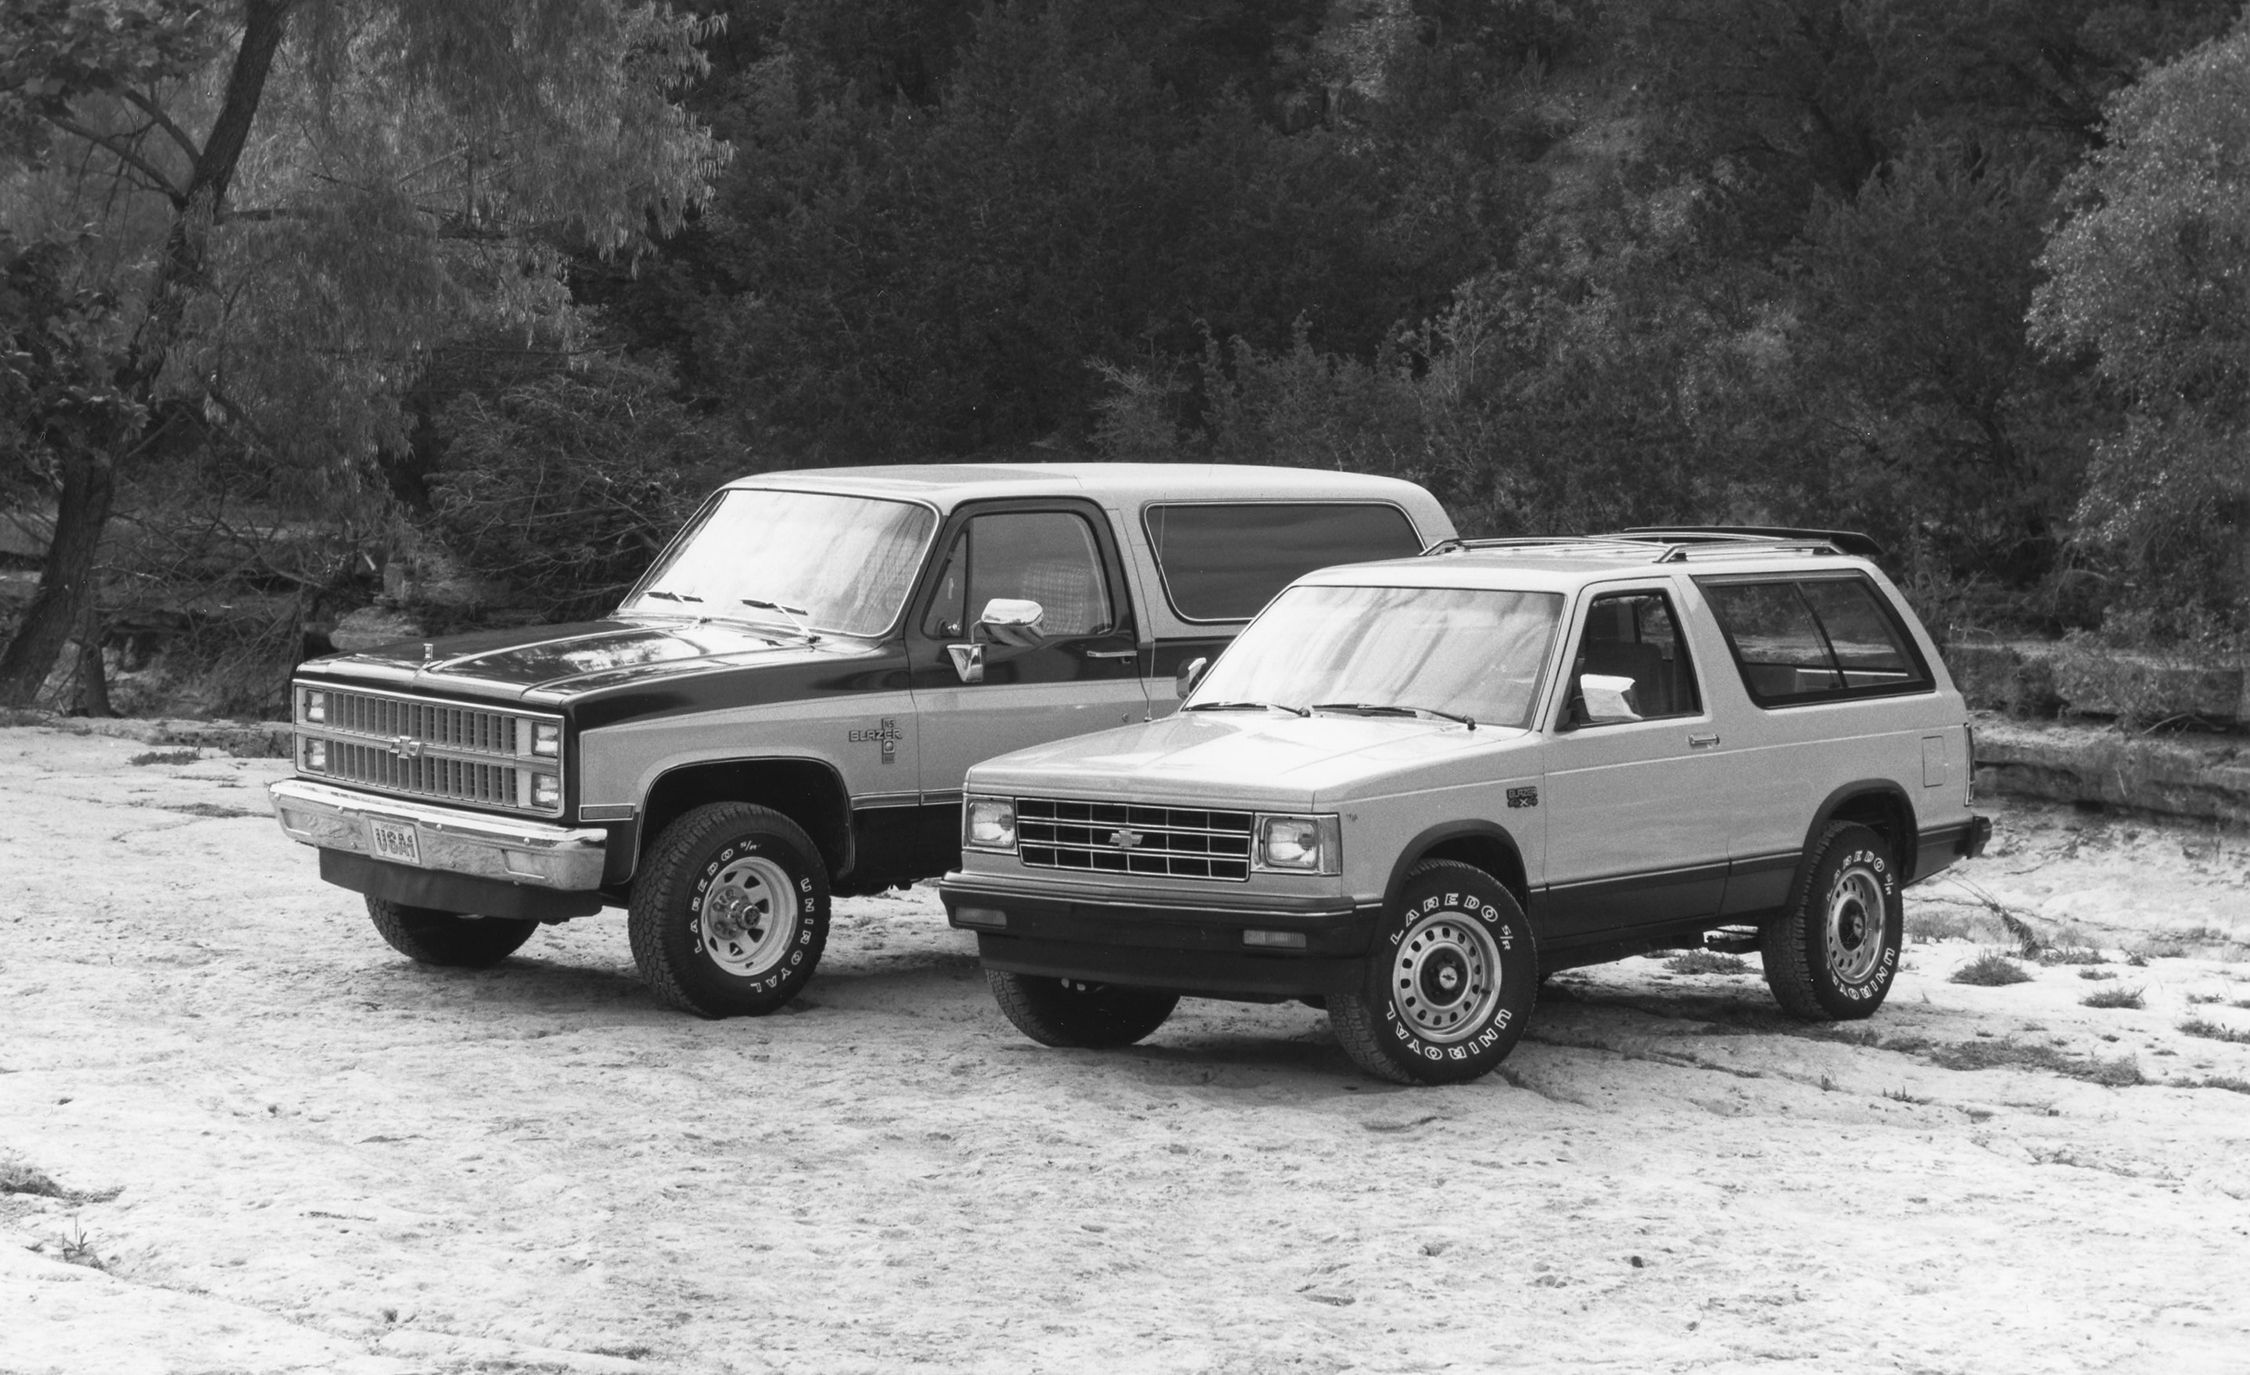 a visual history of the chevrolet blazer 1969 to today visual history of the chevrolet blazer